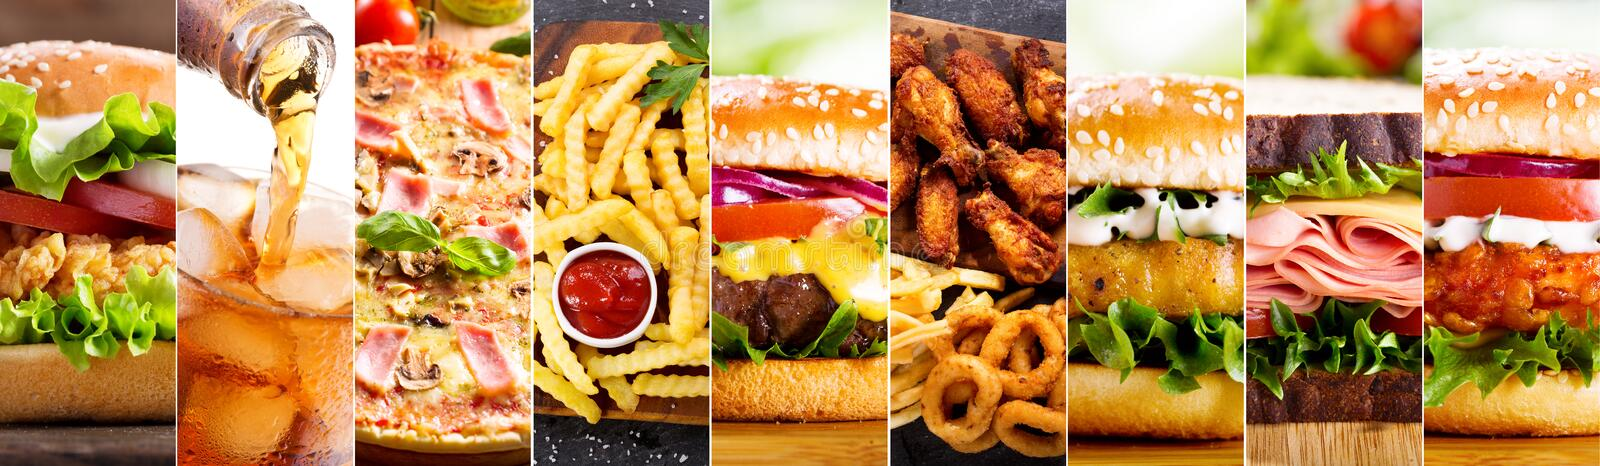 Collage of various fast food products royalty free stock photo